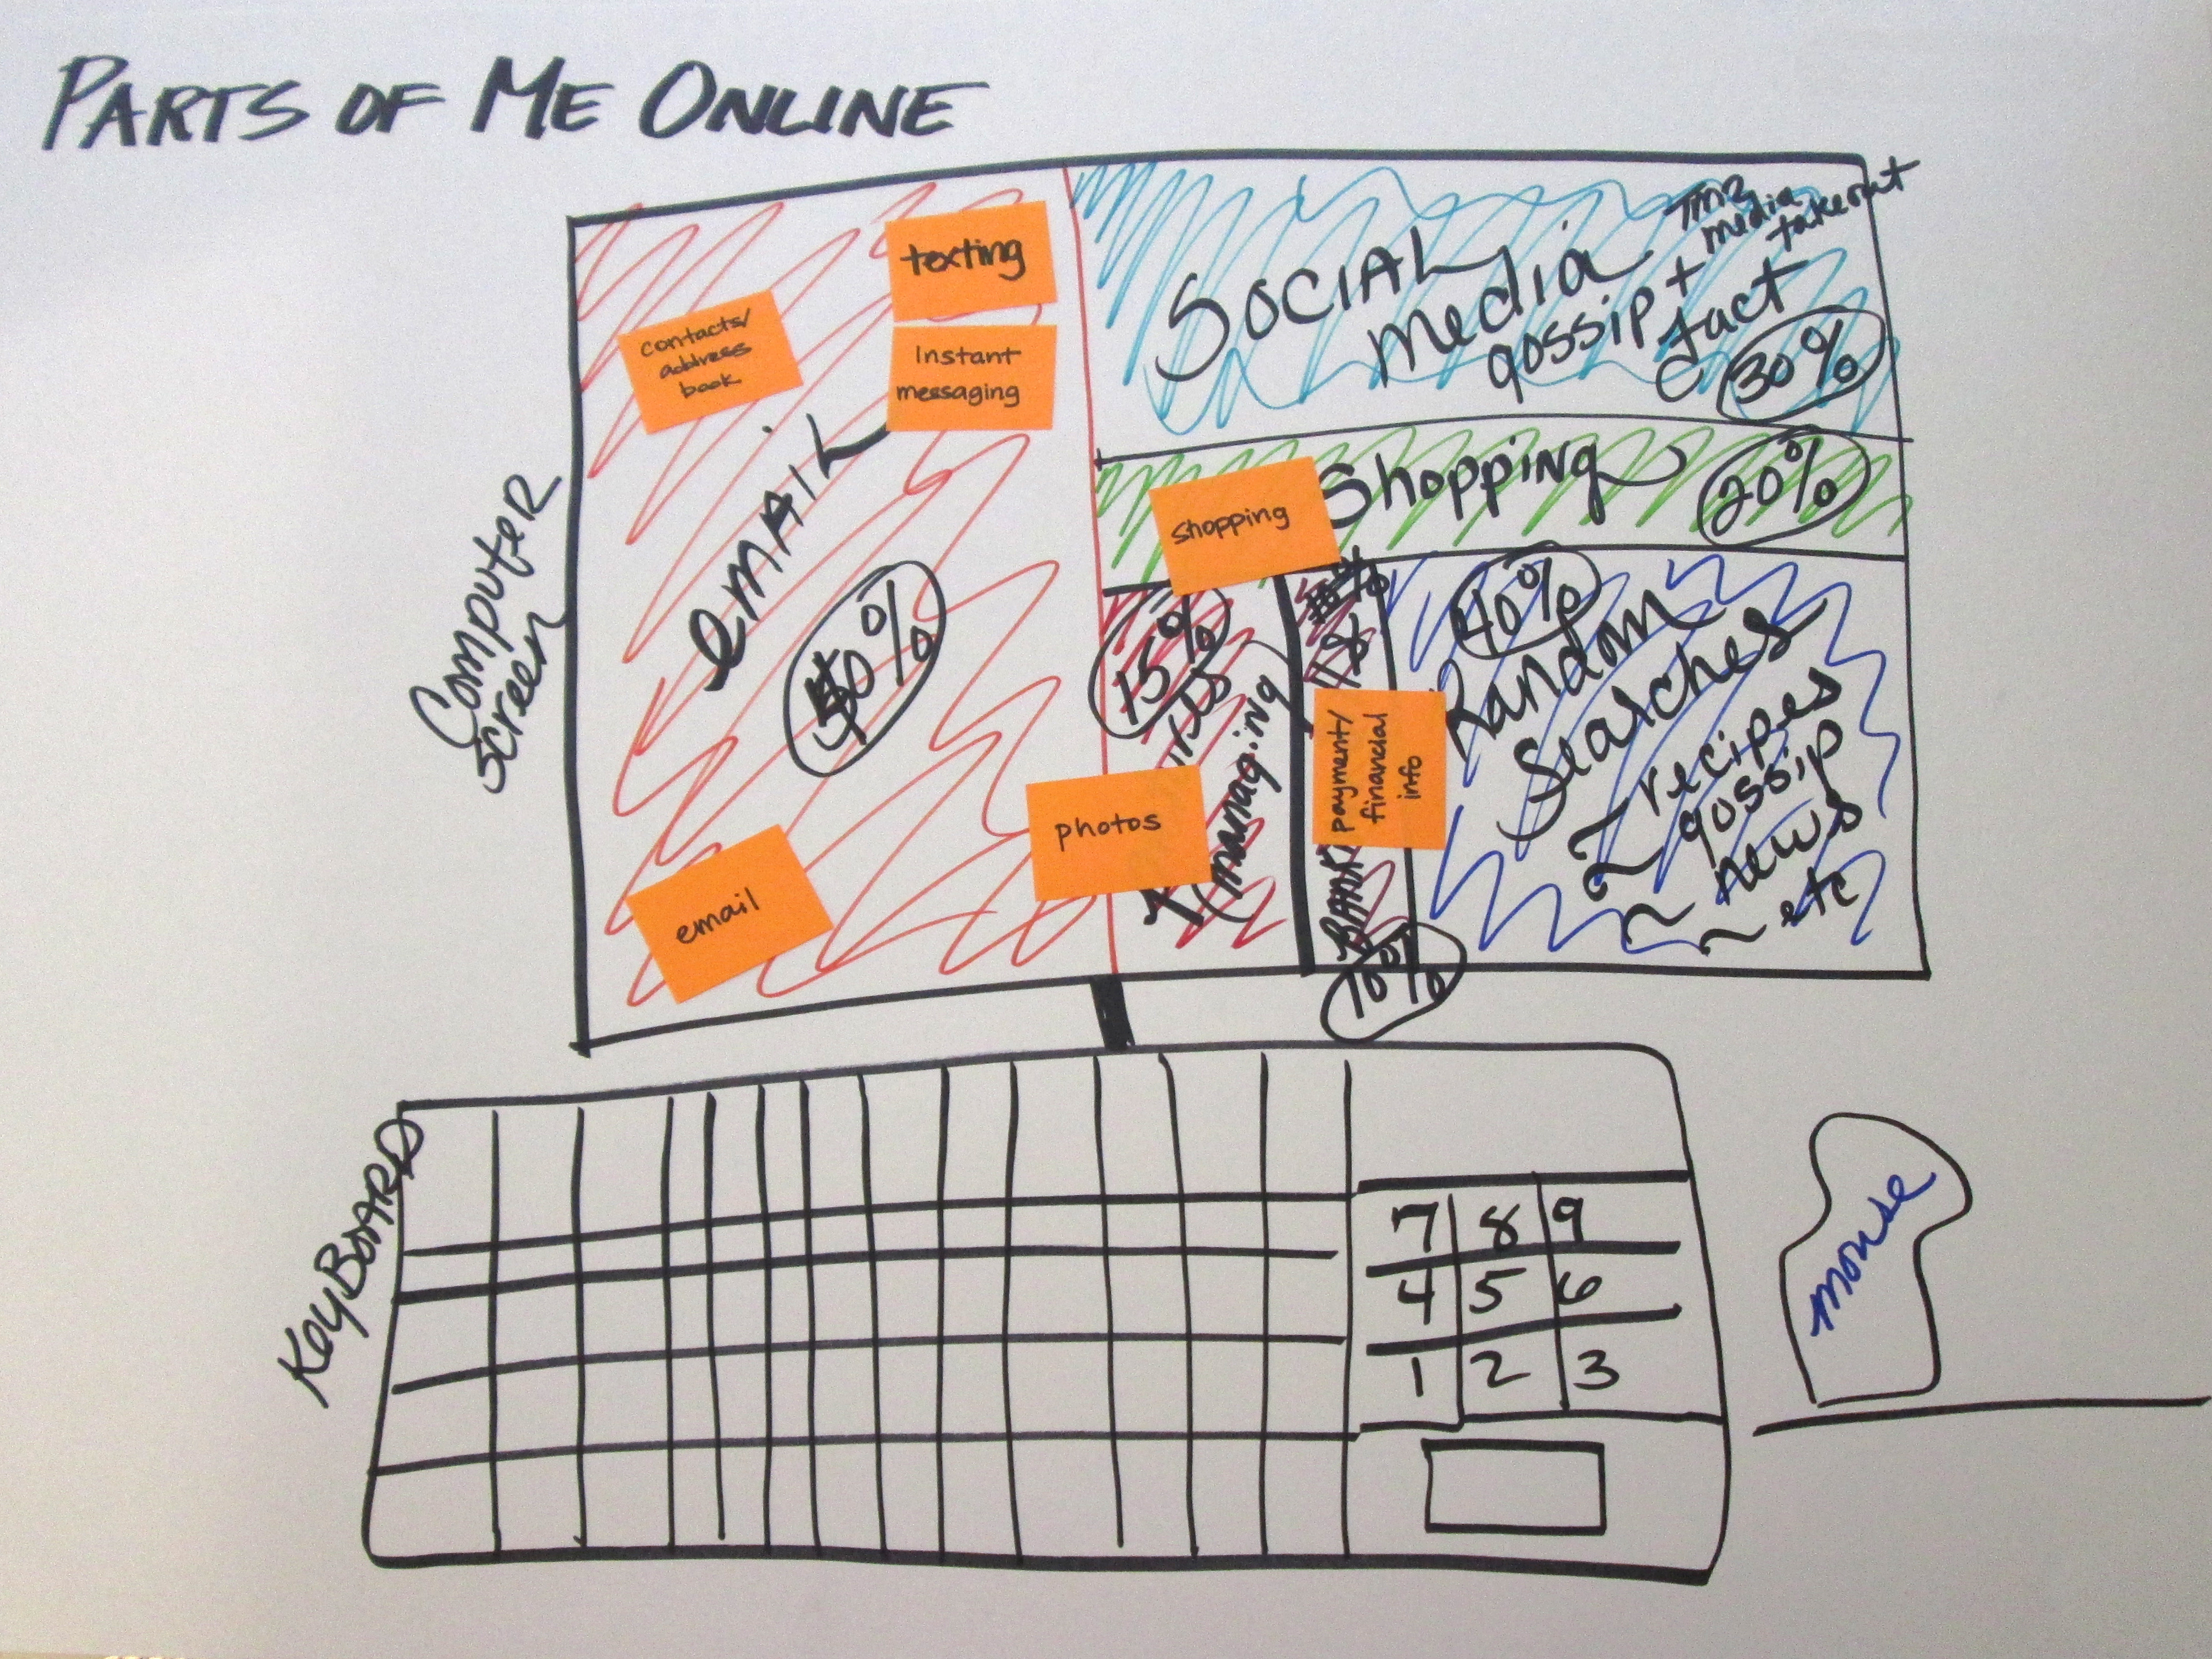 Person 2's map of her online life